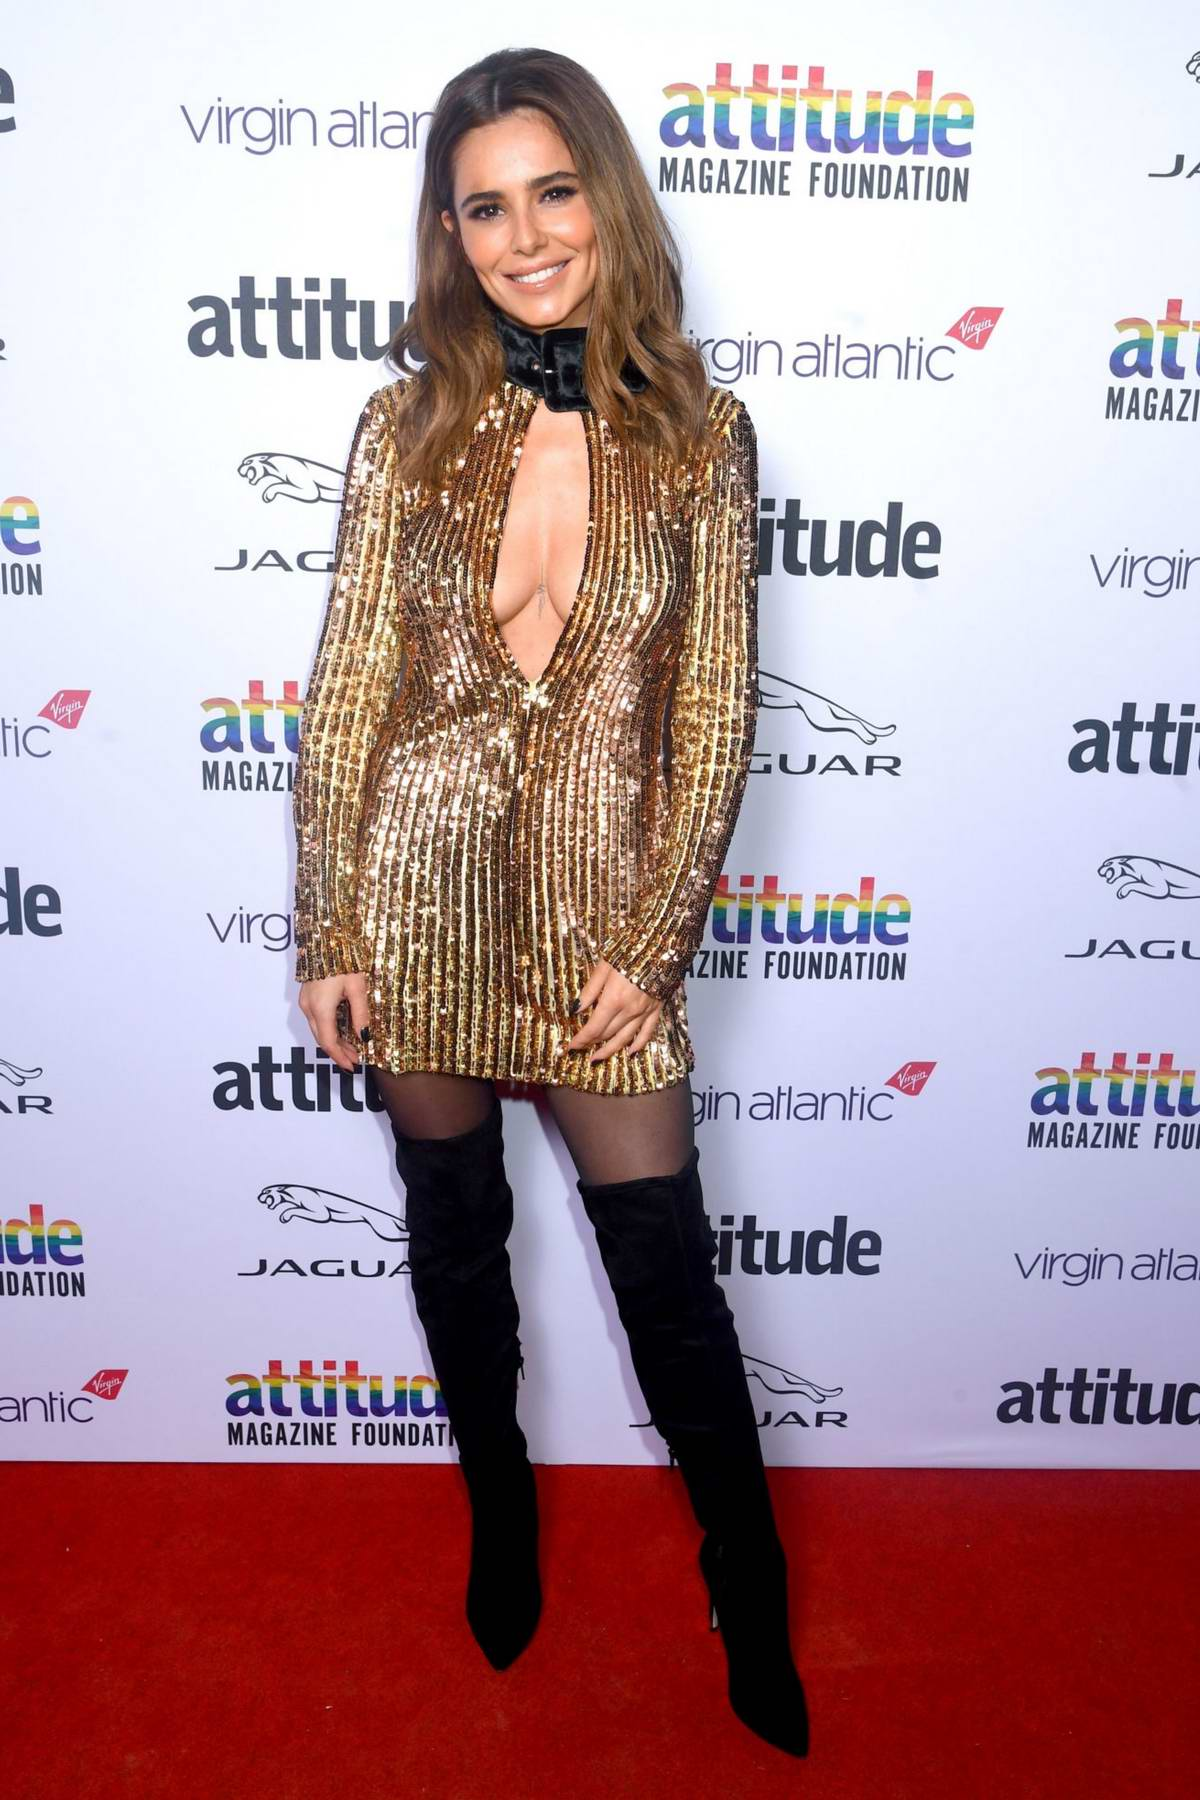 Cheryl Tweedy attends the Virgin Atlantic Attitude Awards 2019 at The Roundhouse in London, UK